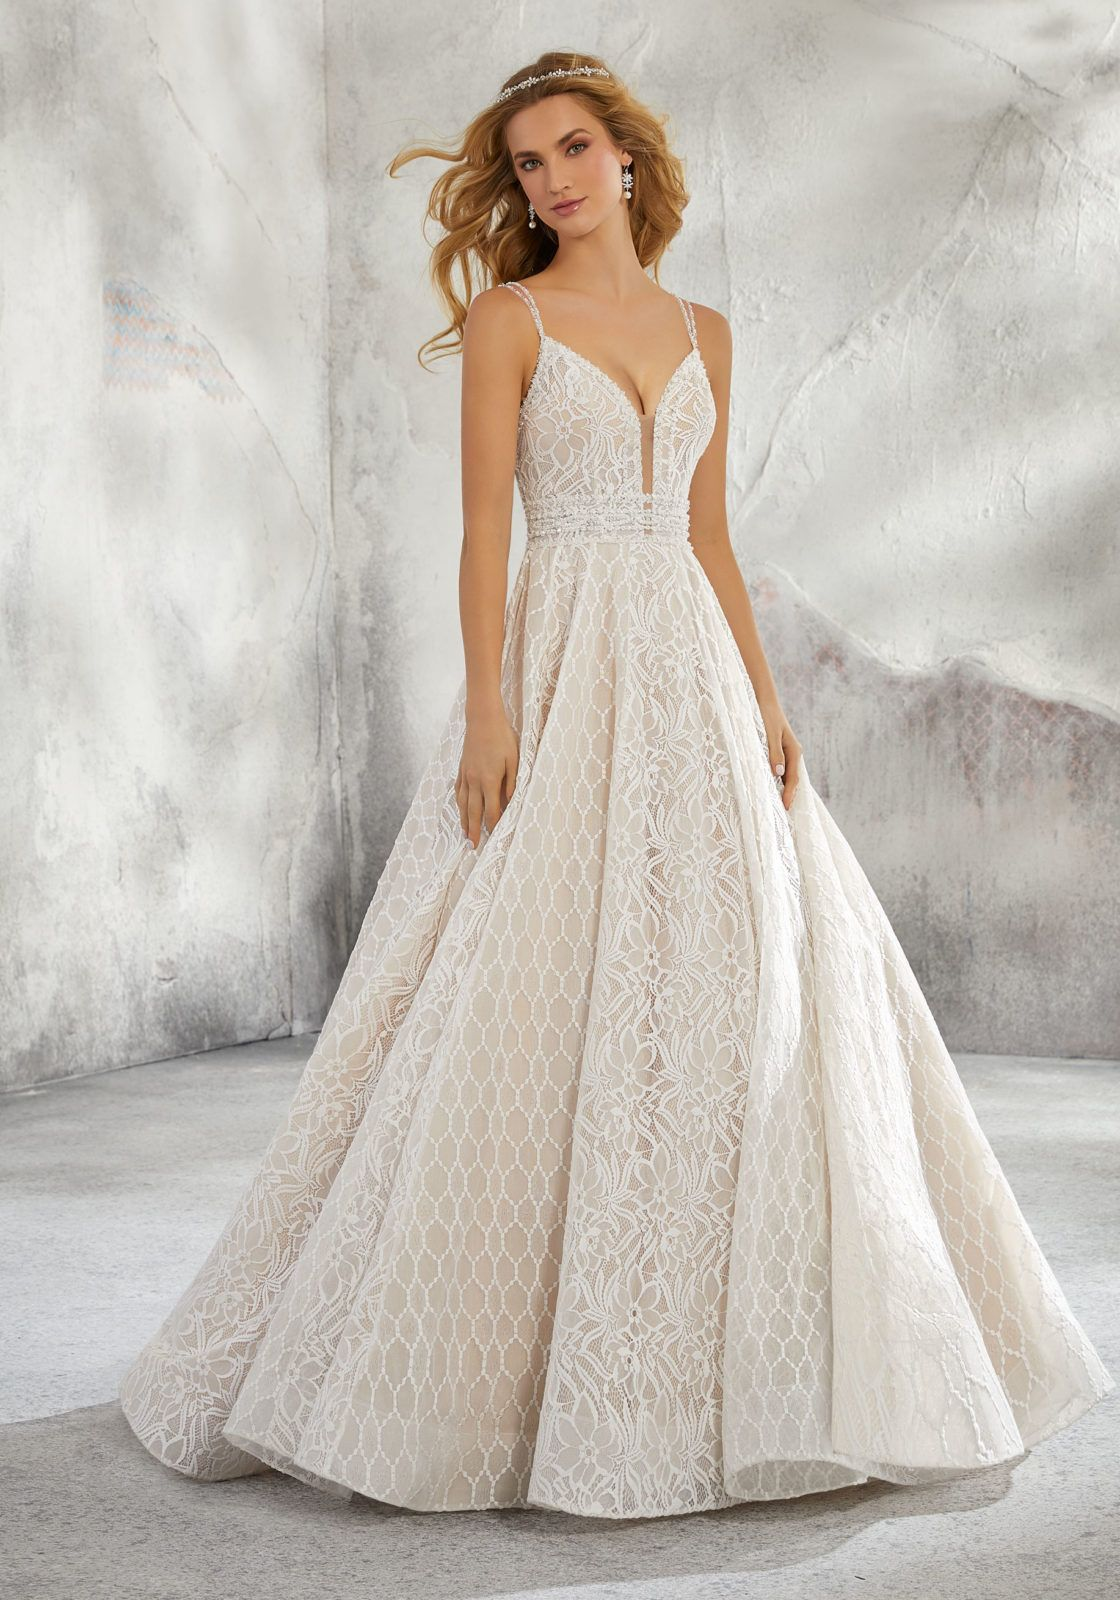 be446d849fc376 Lindsey Wedding Dress 8279 Mori Lee Romantic Bridal Ballgown Featuring  Mixed Patterened Embroidery. A Plunging Illusion Bodice, Trimmed with  Beaded Straps ...